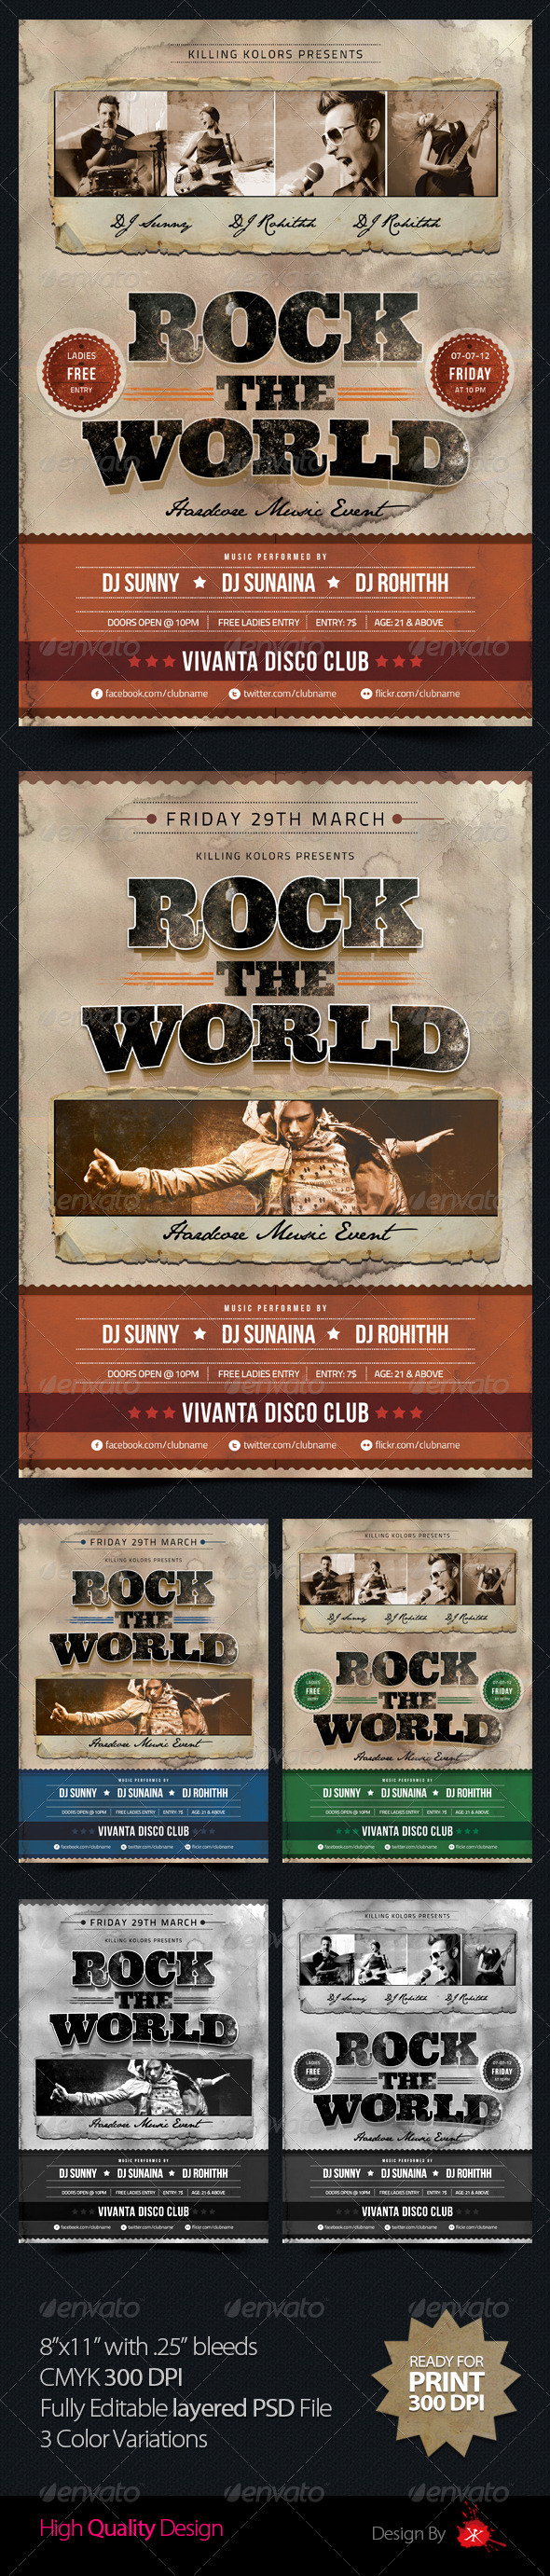 Rock the World Retro Flyer - Concerts Events